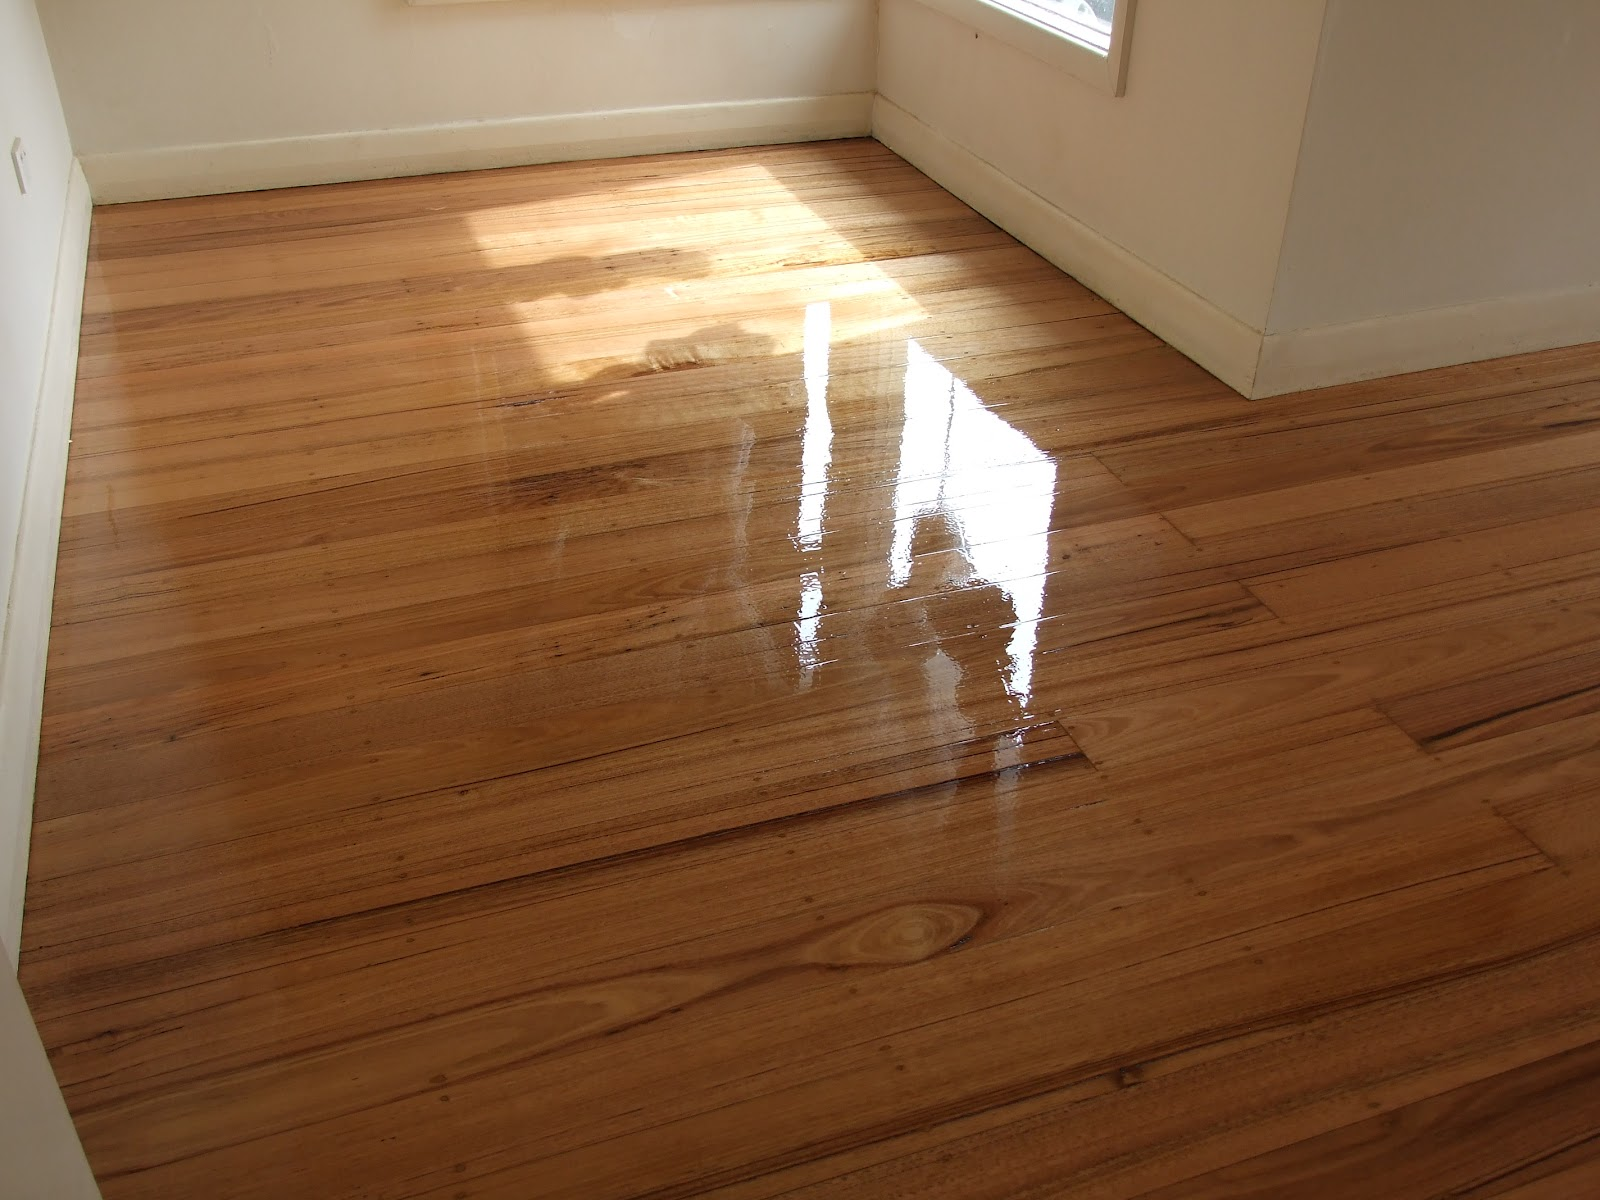 Hardwood floor finishes flooring ideas home for Wood floor finishes